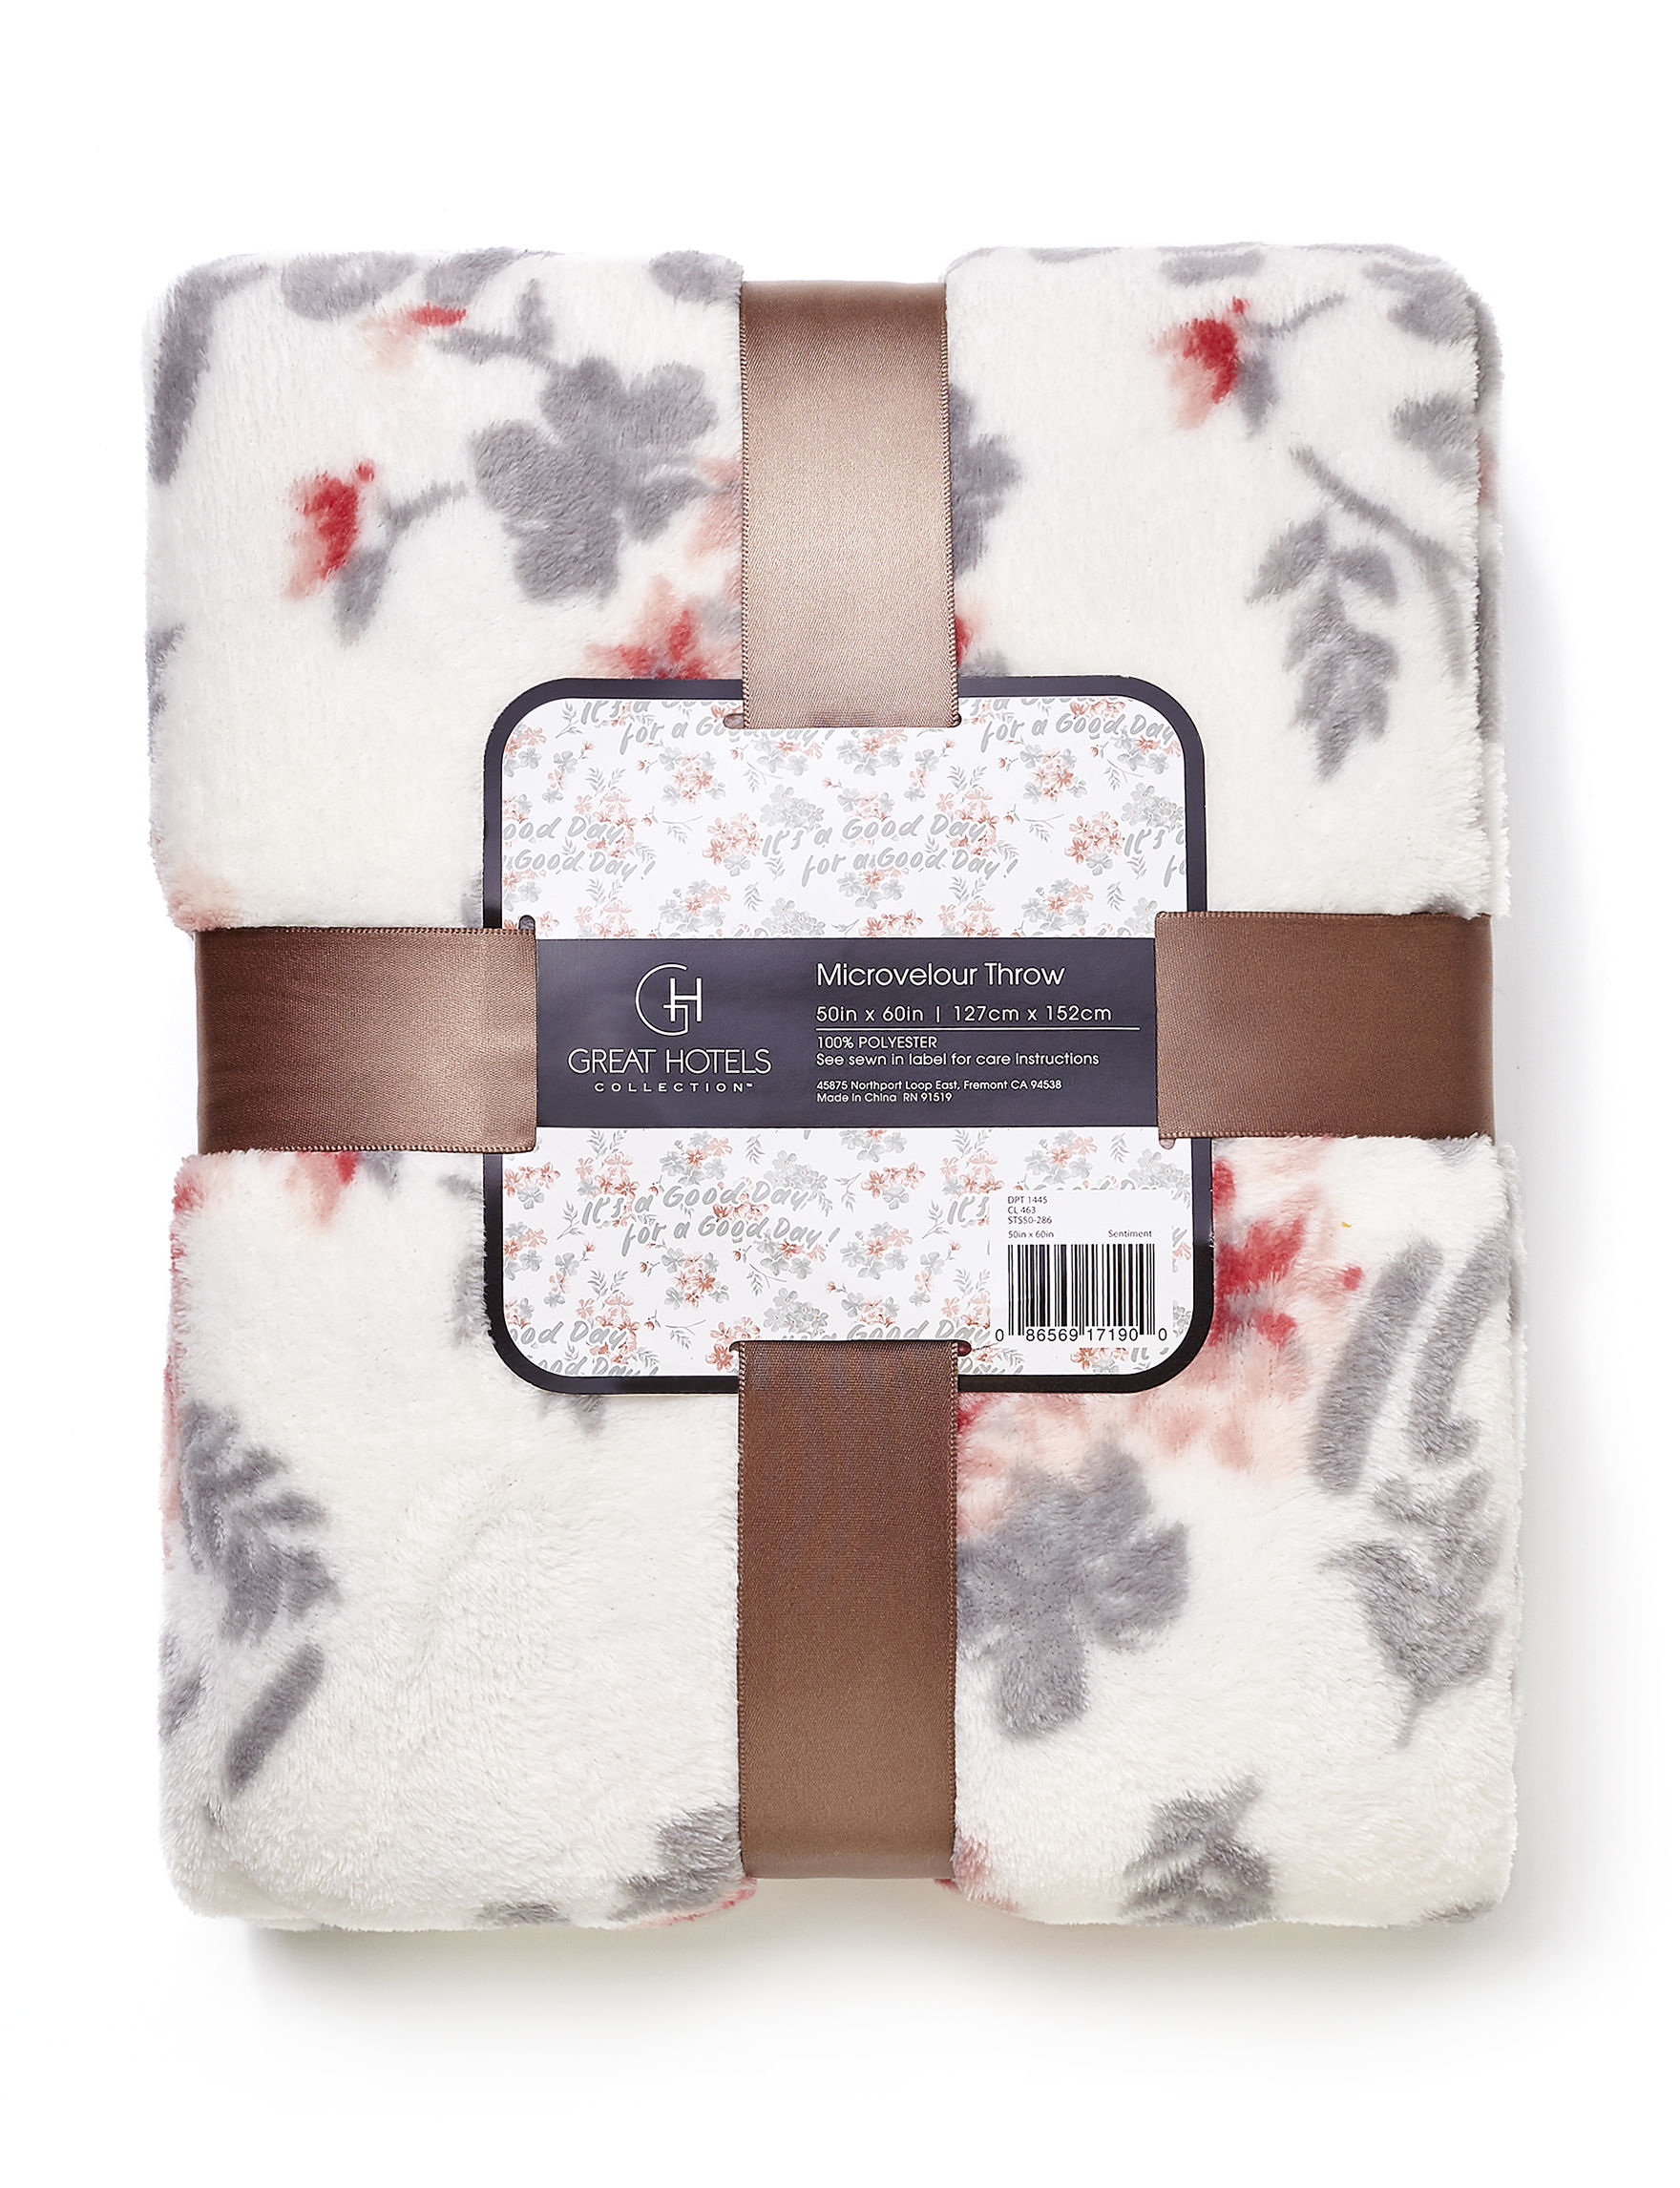 Great Hotels Collection White / Grey / Pink Floral Blankets & Throws